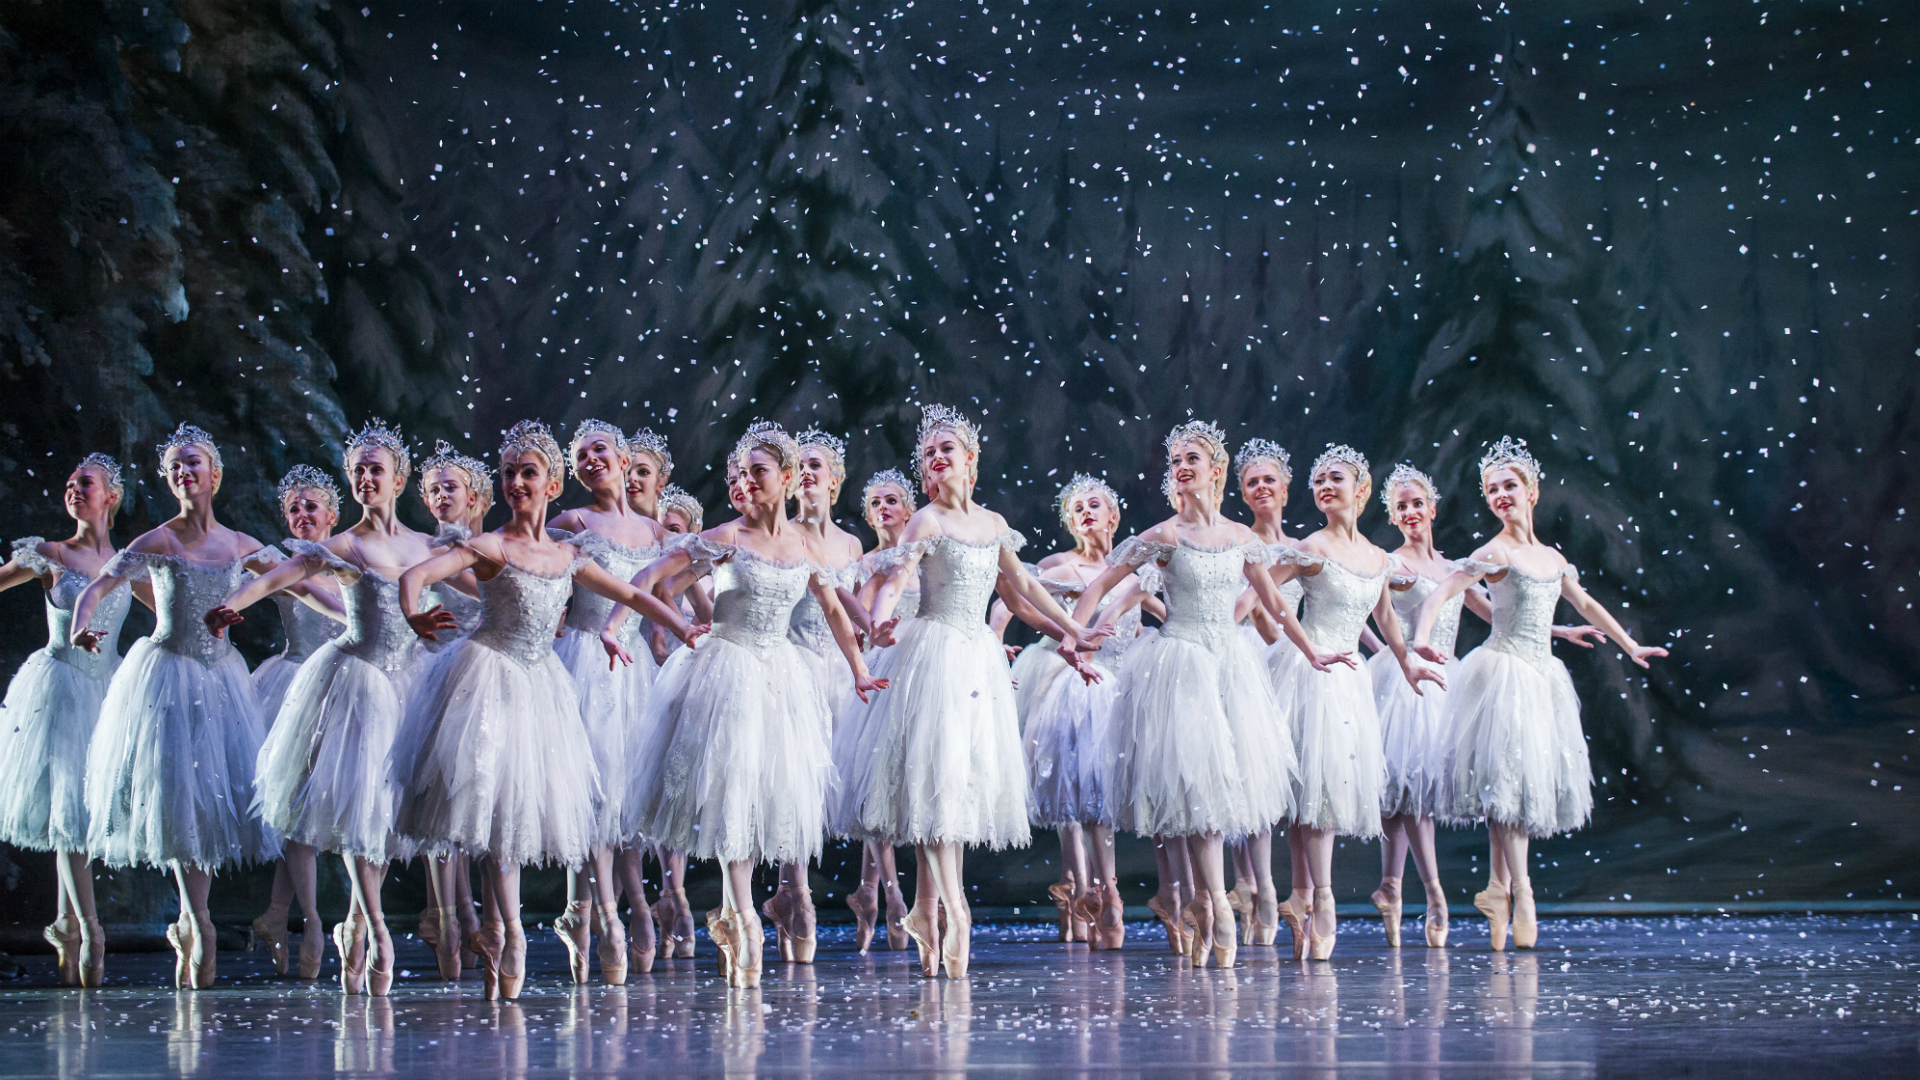 A group of ballerinas dance through falling snow in The Nutcracker.